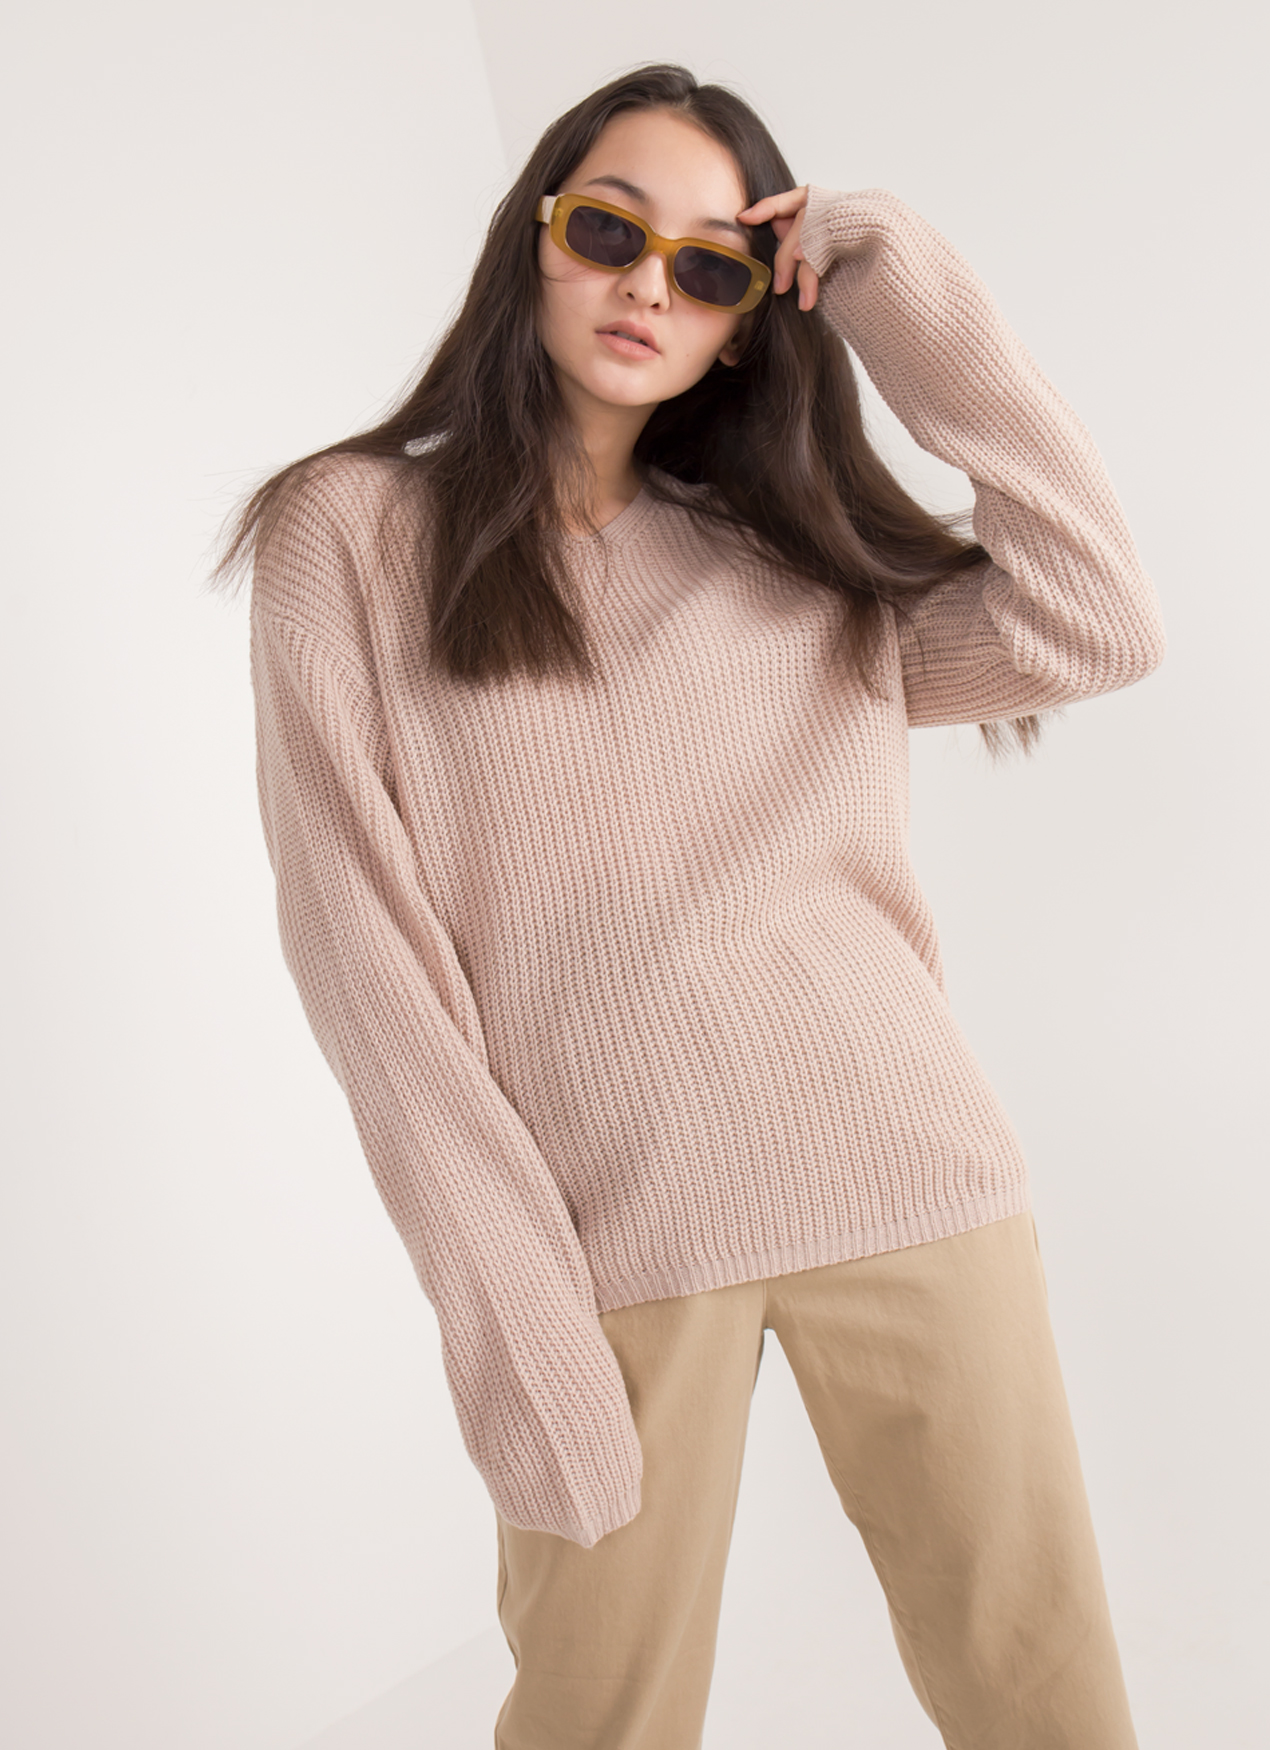 E-hyphen World Gallery Sakura Sweater - Pink Beige